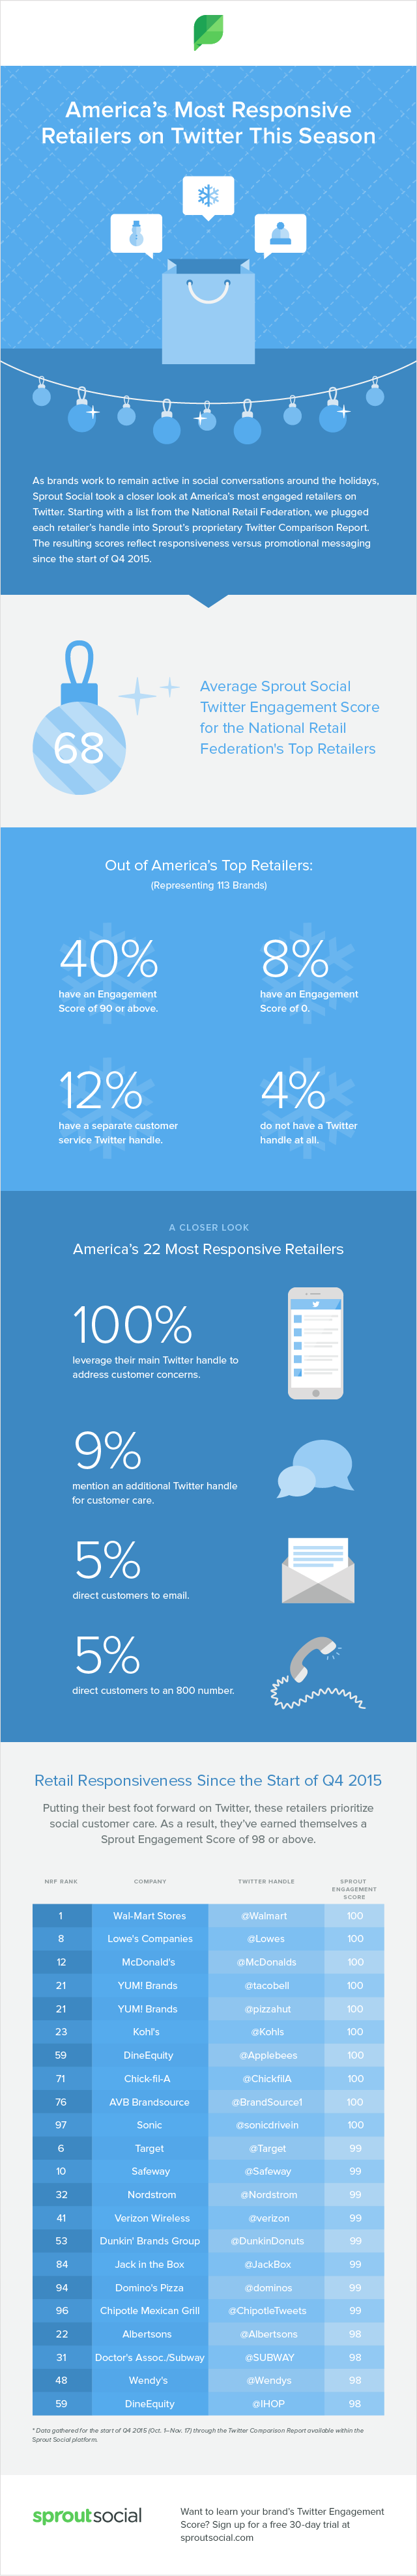 Most Responsive Retail Brands on Twitter Infographic